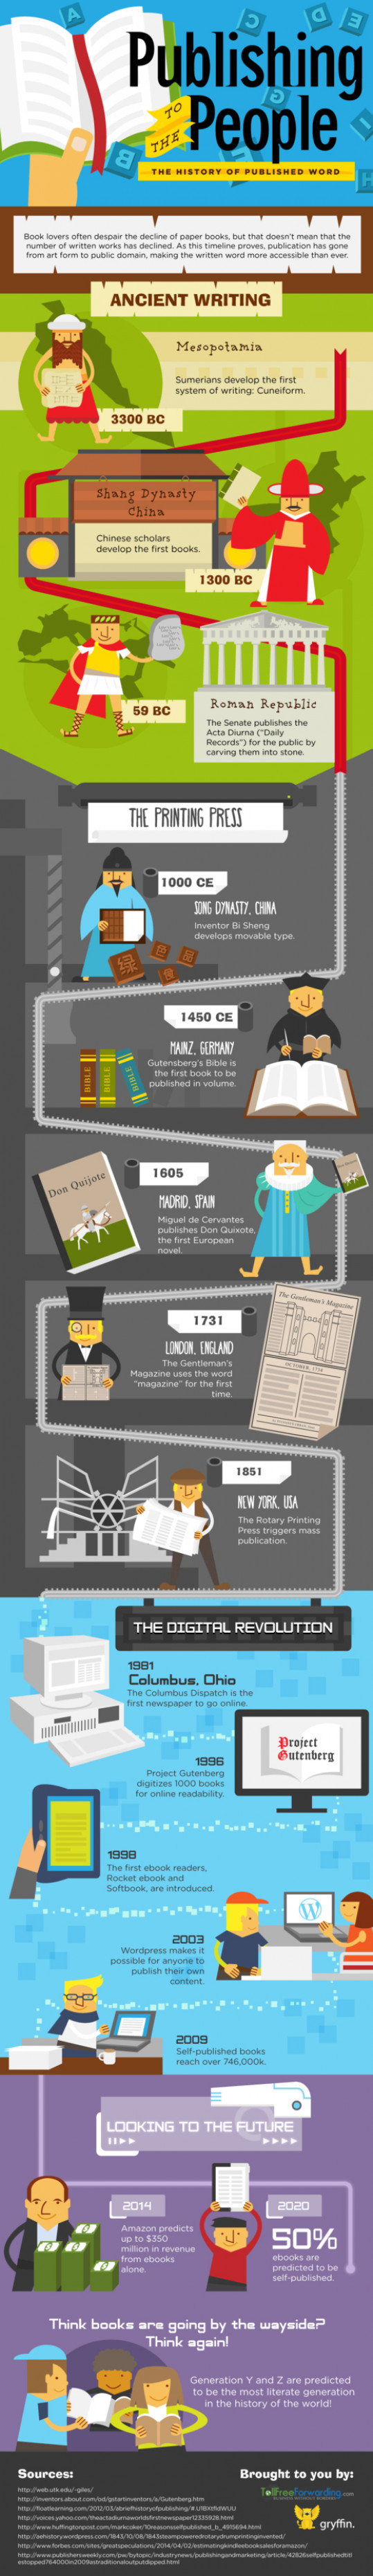 Publishing to the People: The History of Published Word